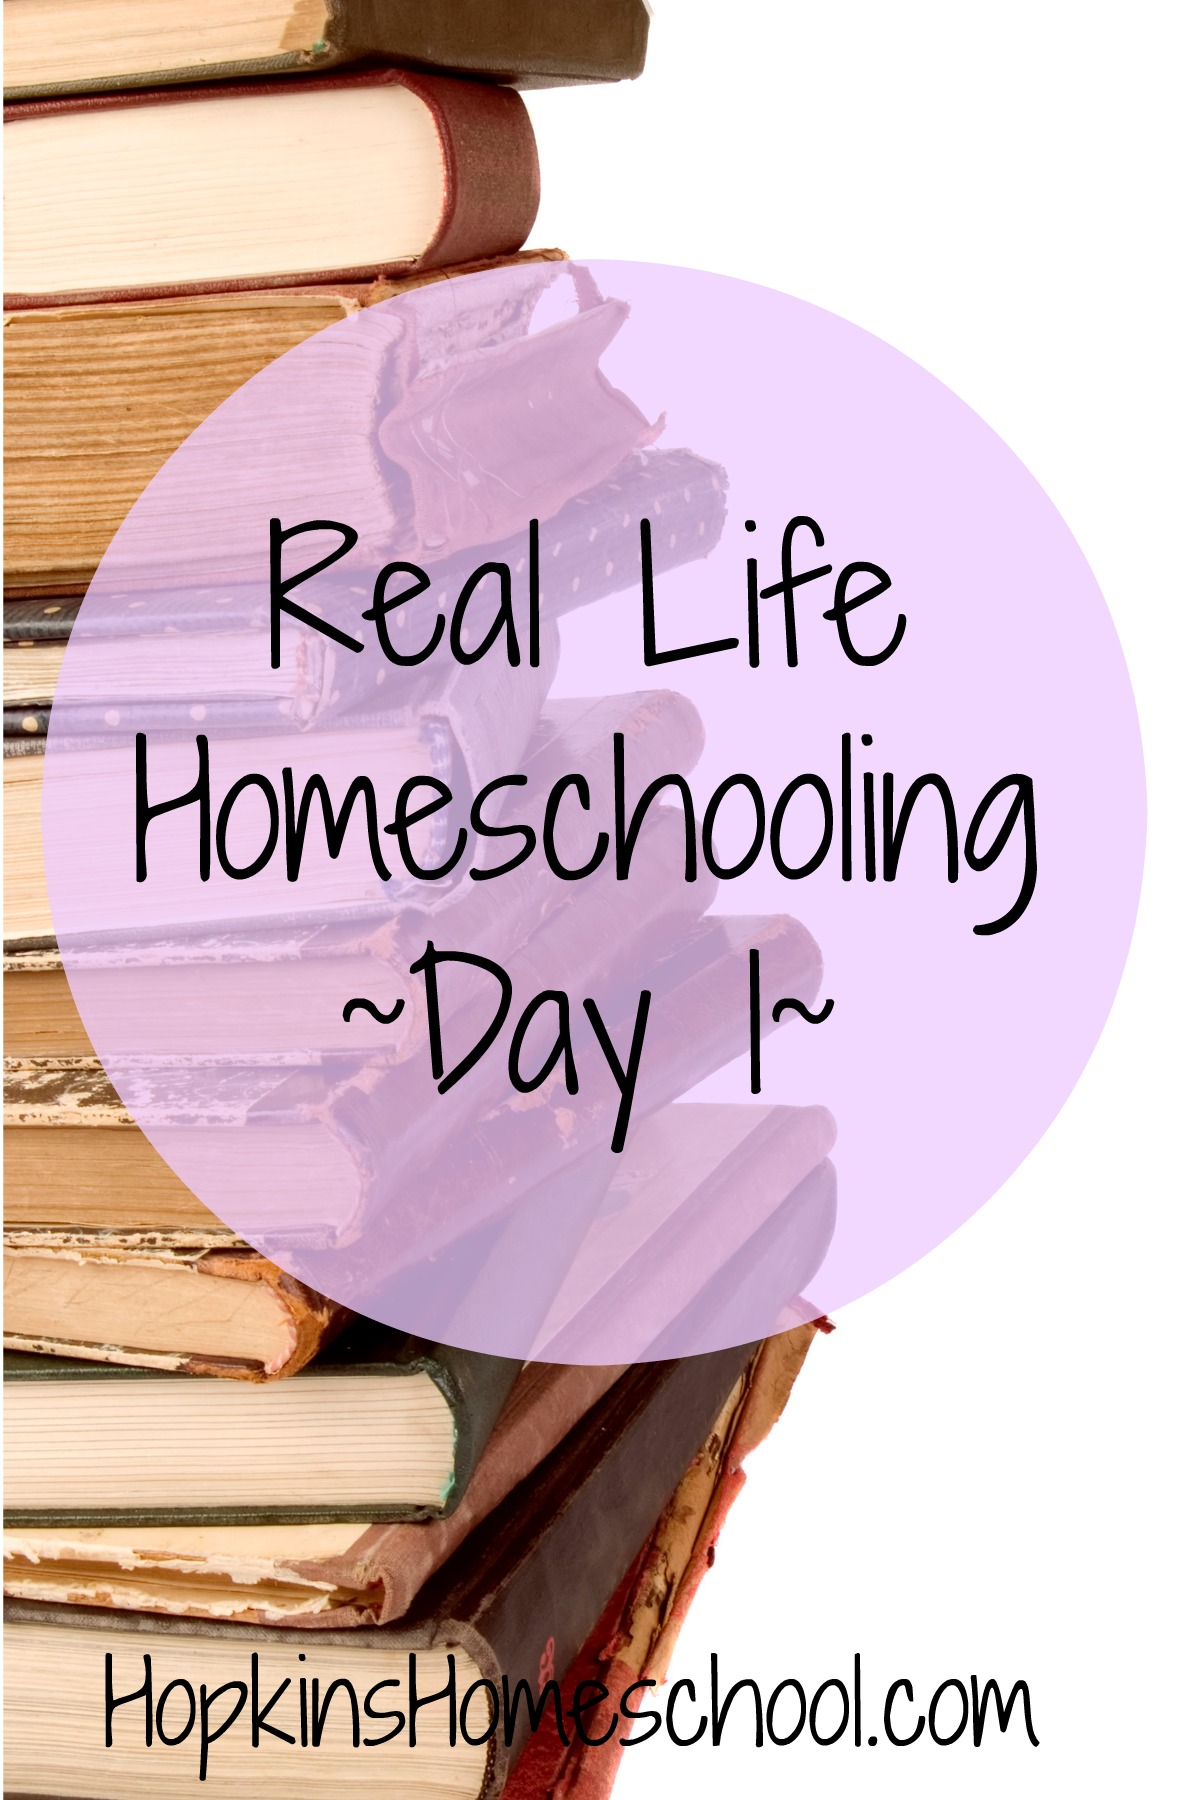 Real Life Homeschooling Day 1